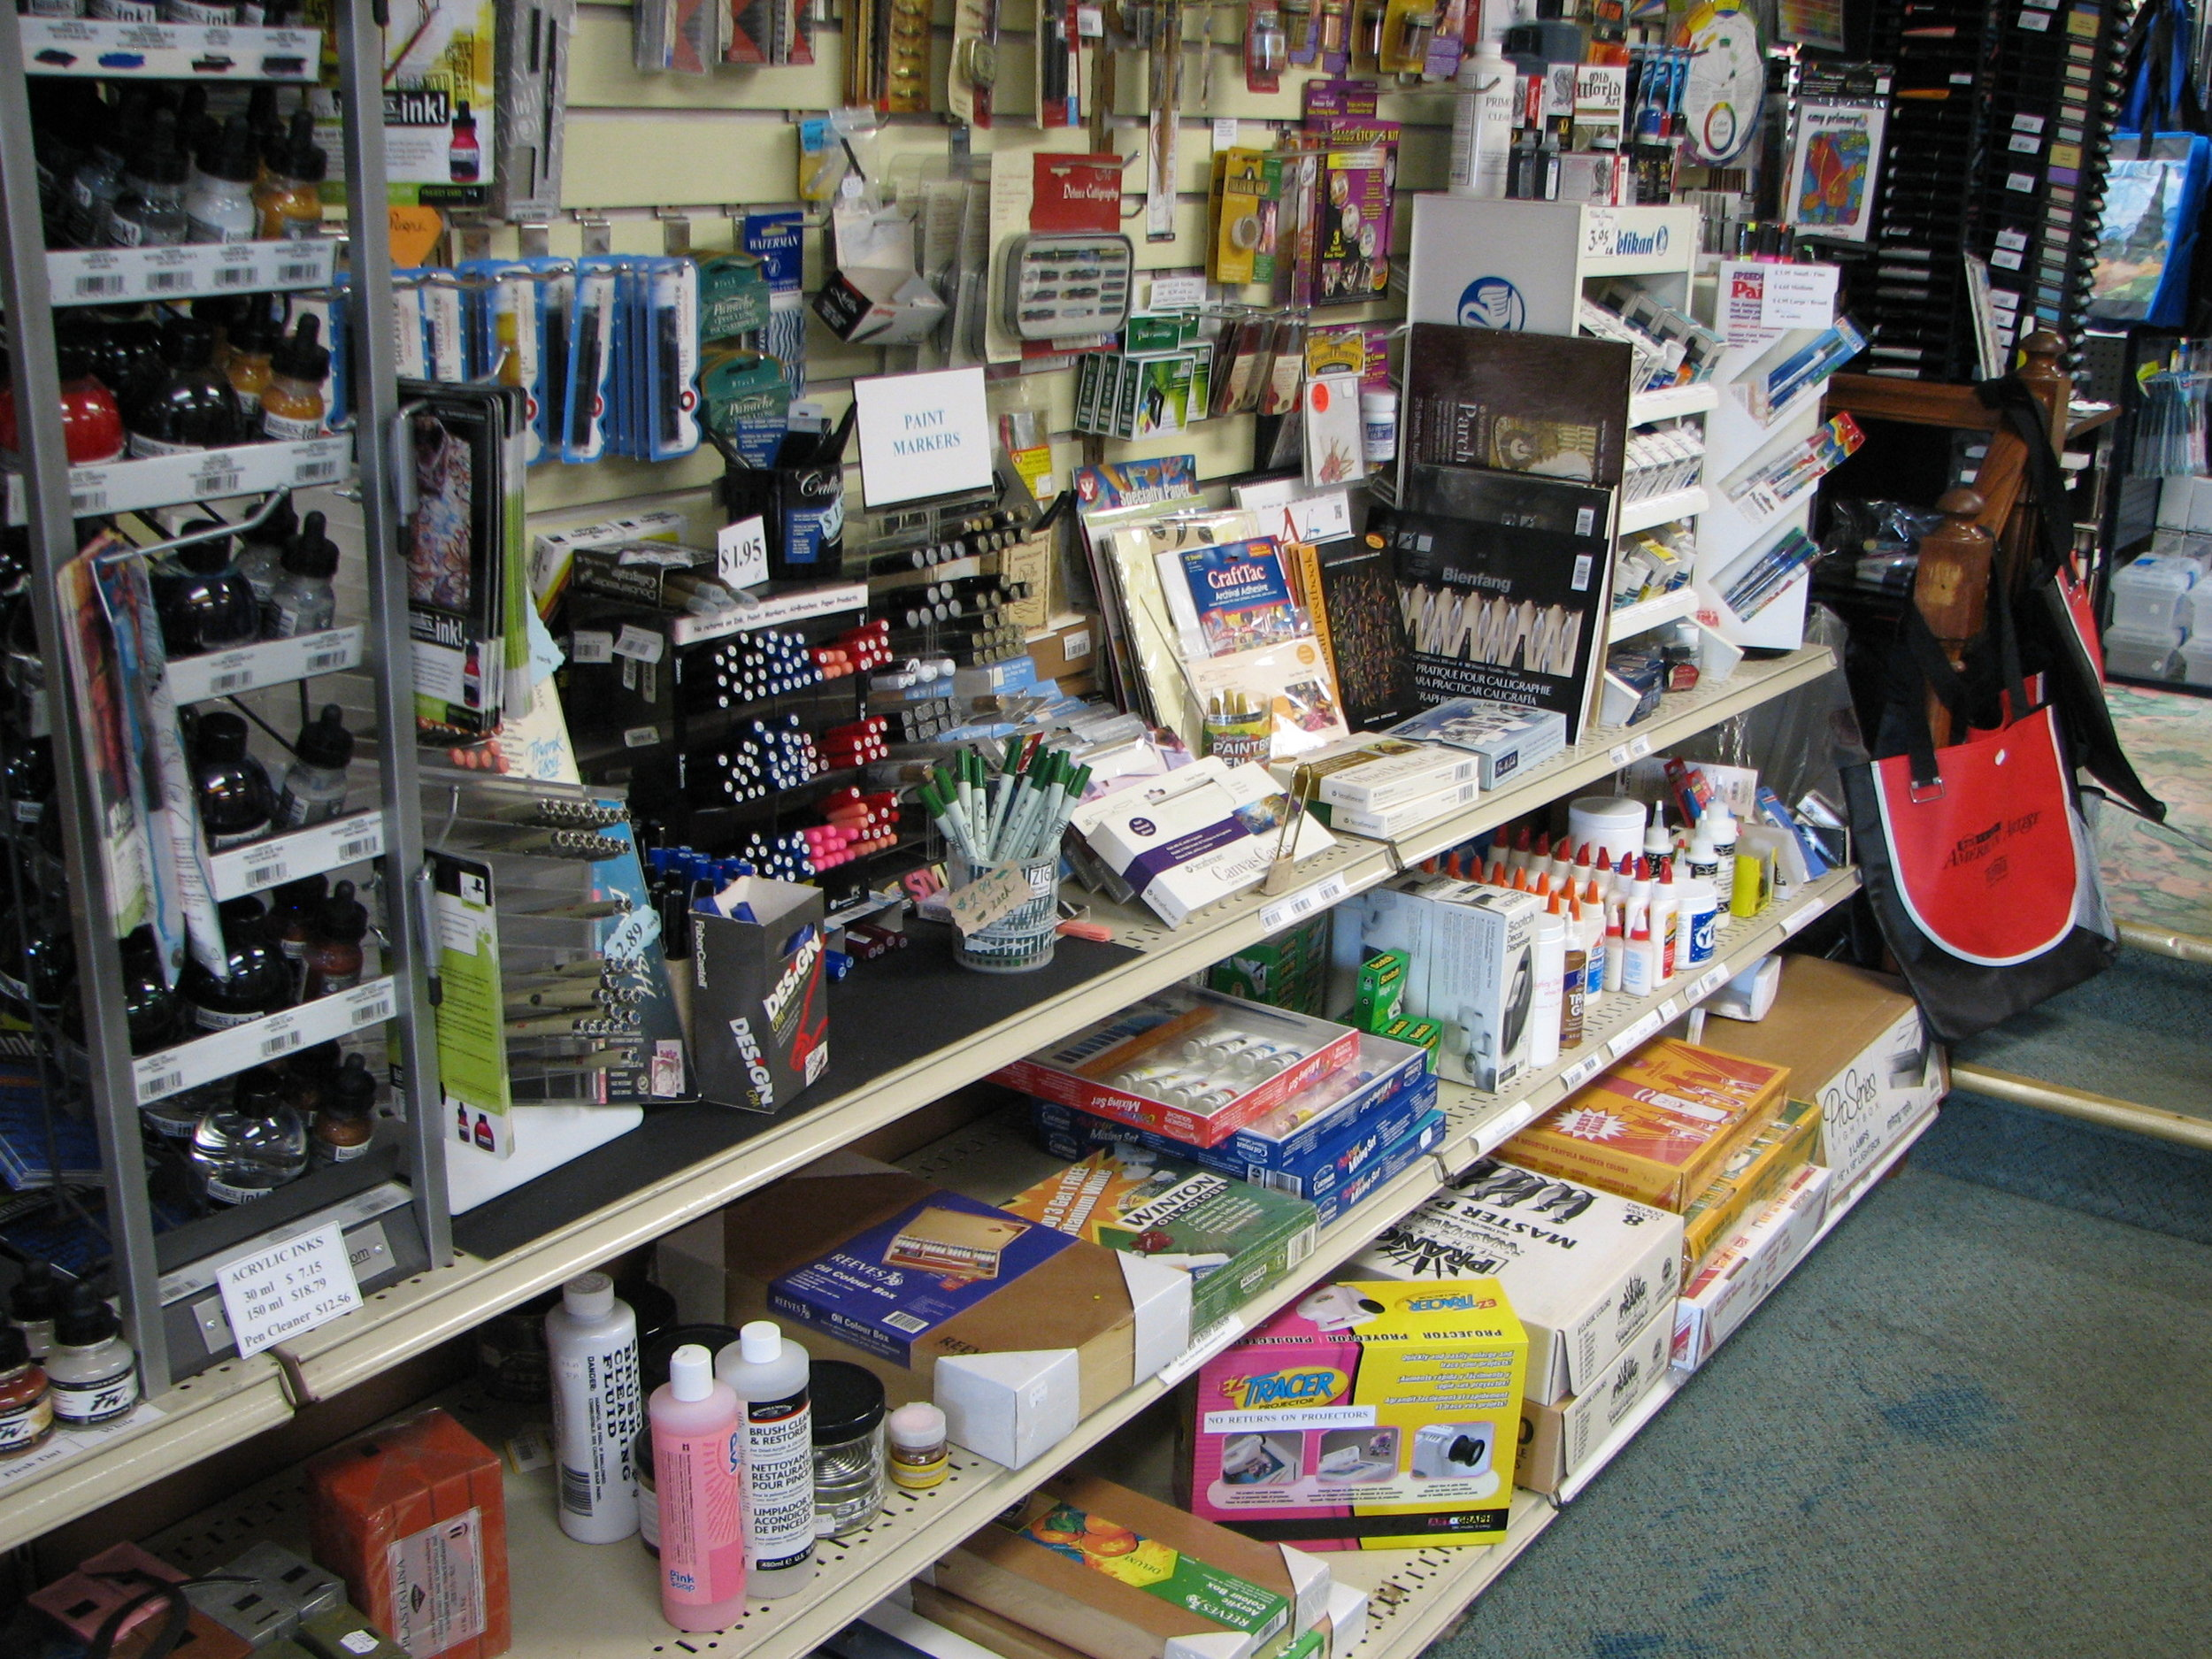 Acrylic Inks and Calligraphy supplies